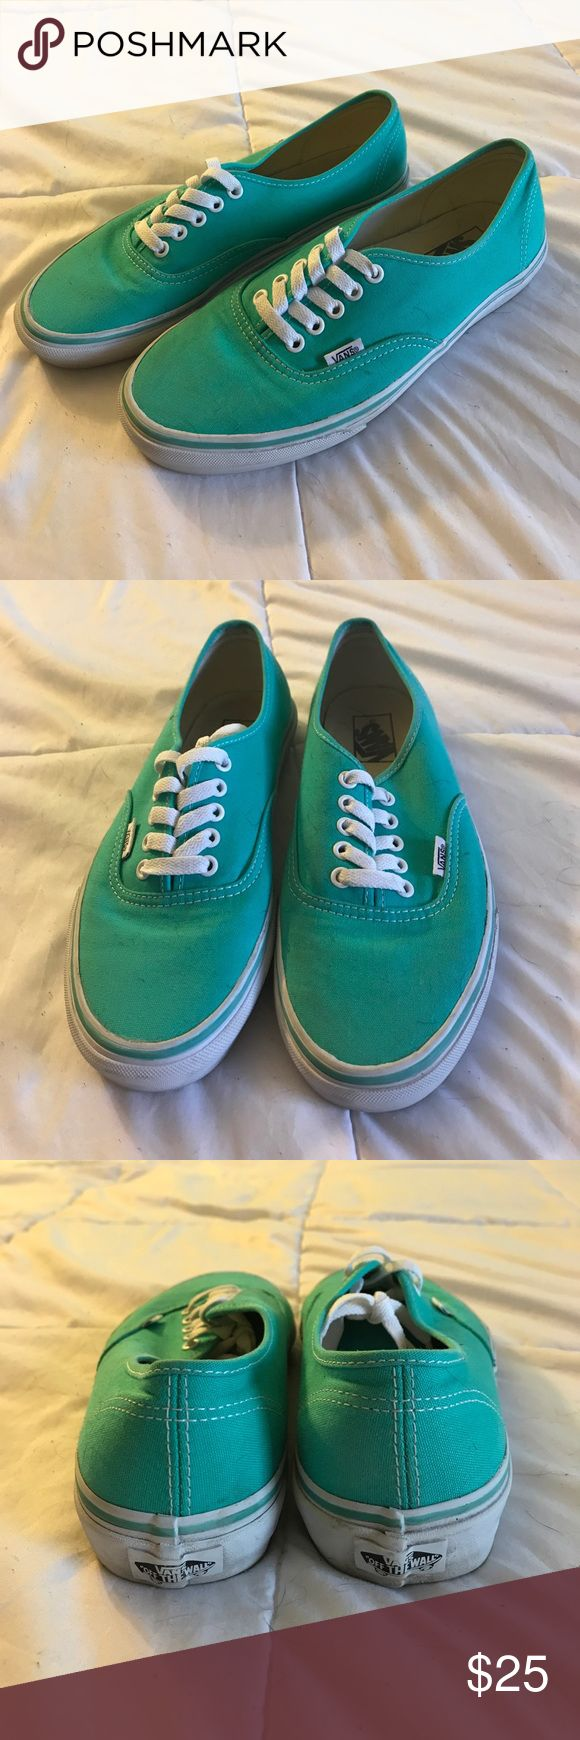 Teal Vans These are teal Vans. Size men 8 women's 9.5. Only worn a handful of times and are still in great condition. Vans Shoes Sneakers